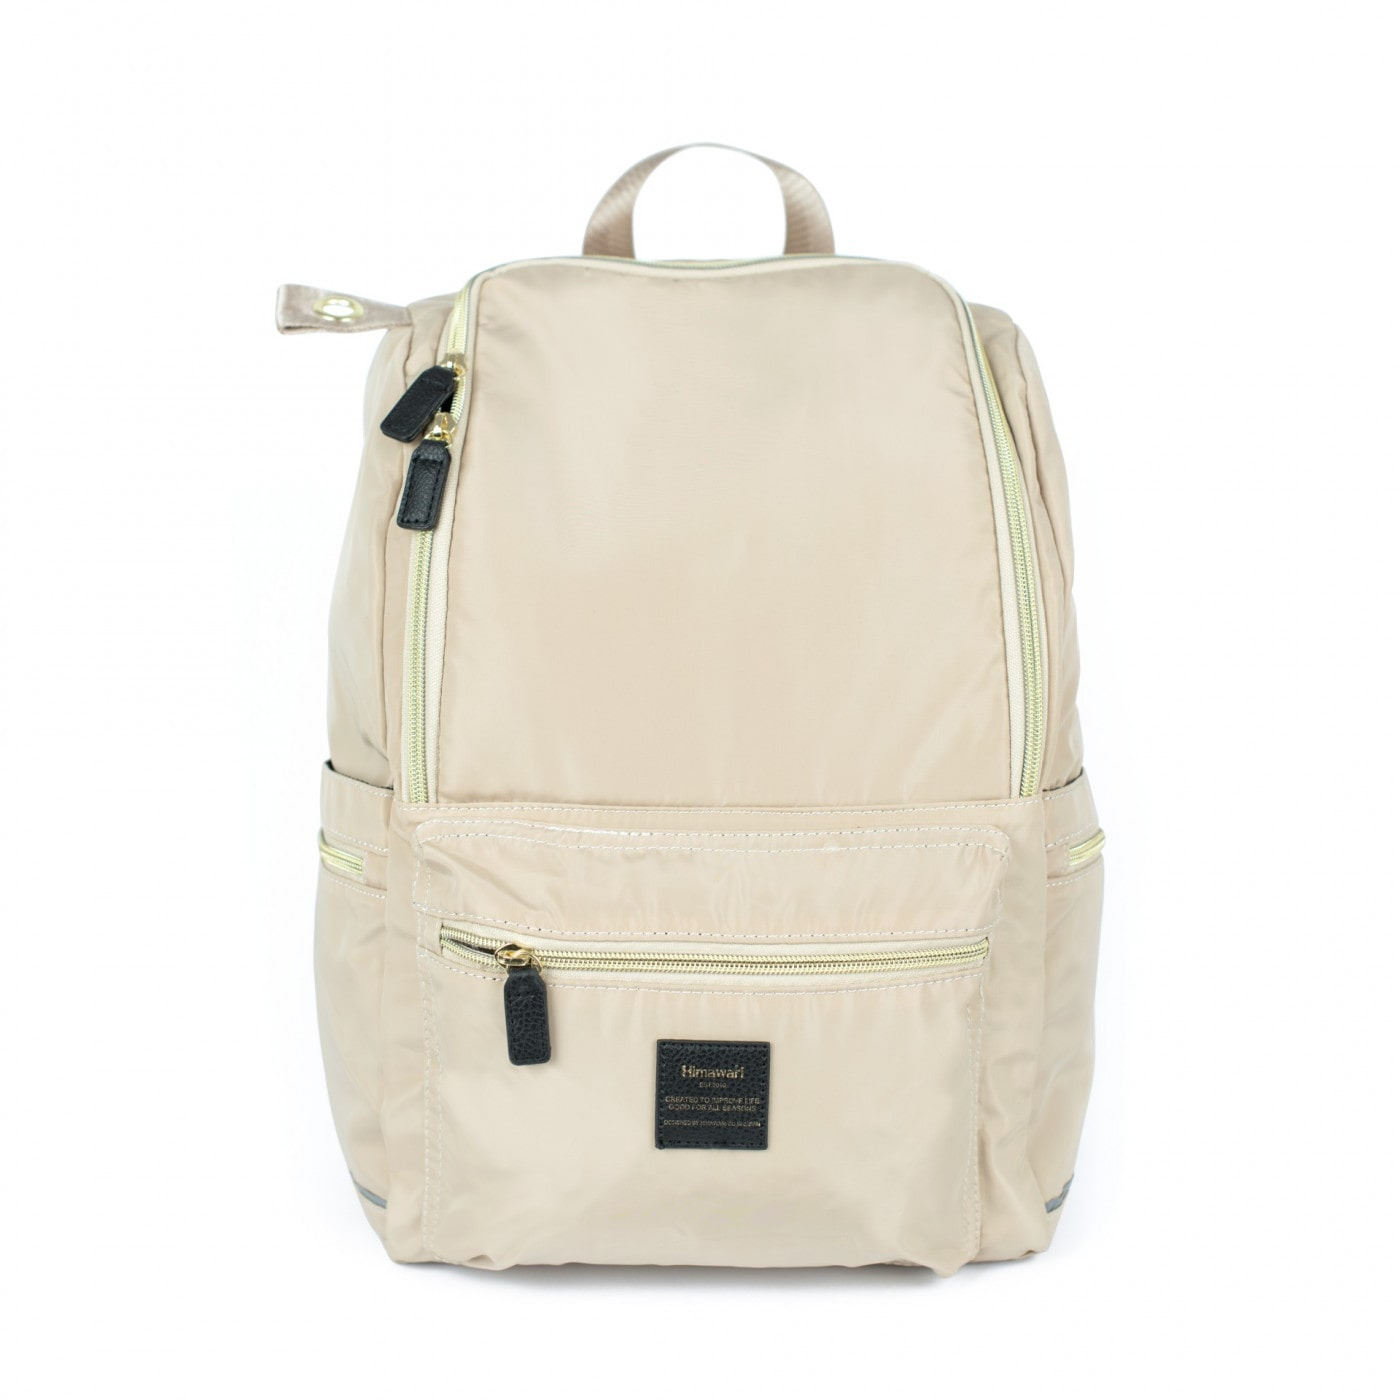 Art Of Polo Woman's Backpack tr20233